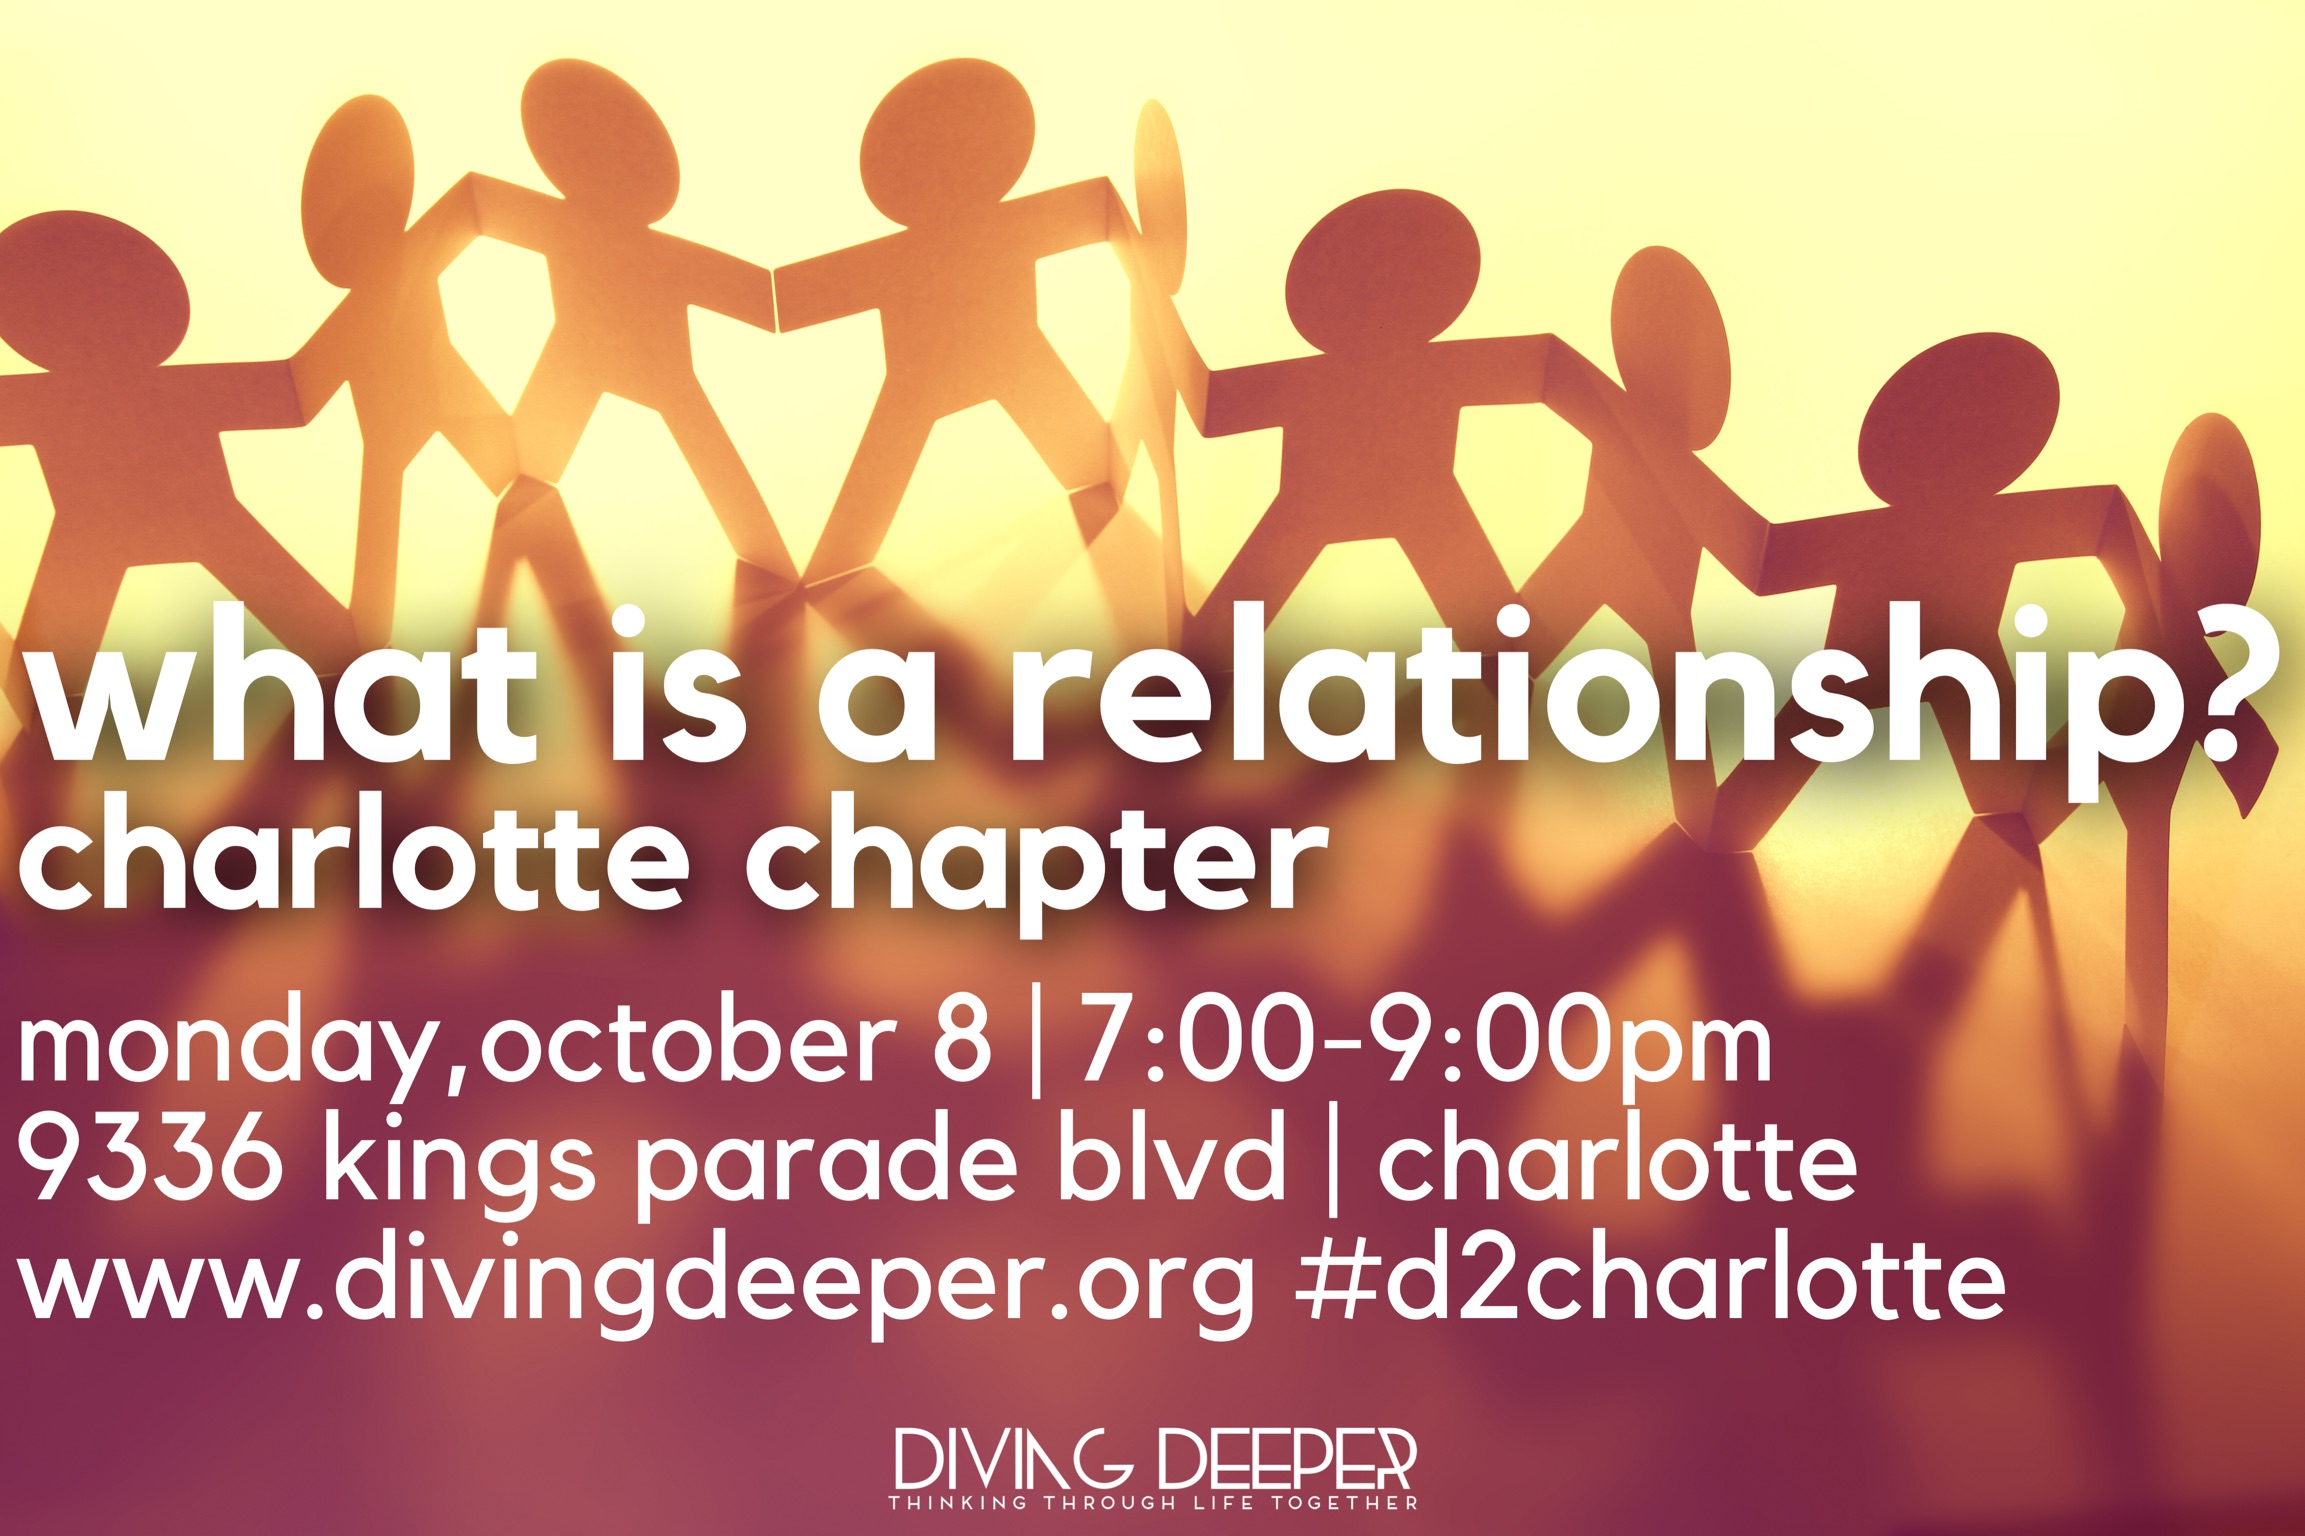 D2 Charlotte - What Is a Relationship - October 2018